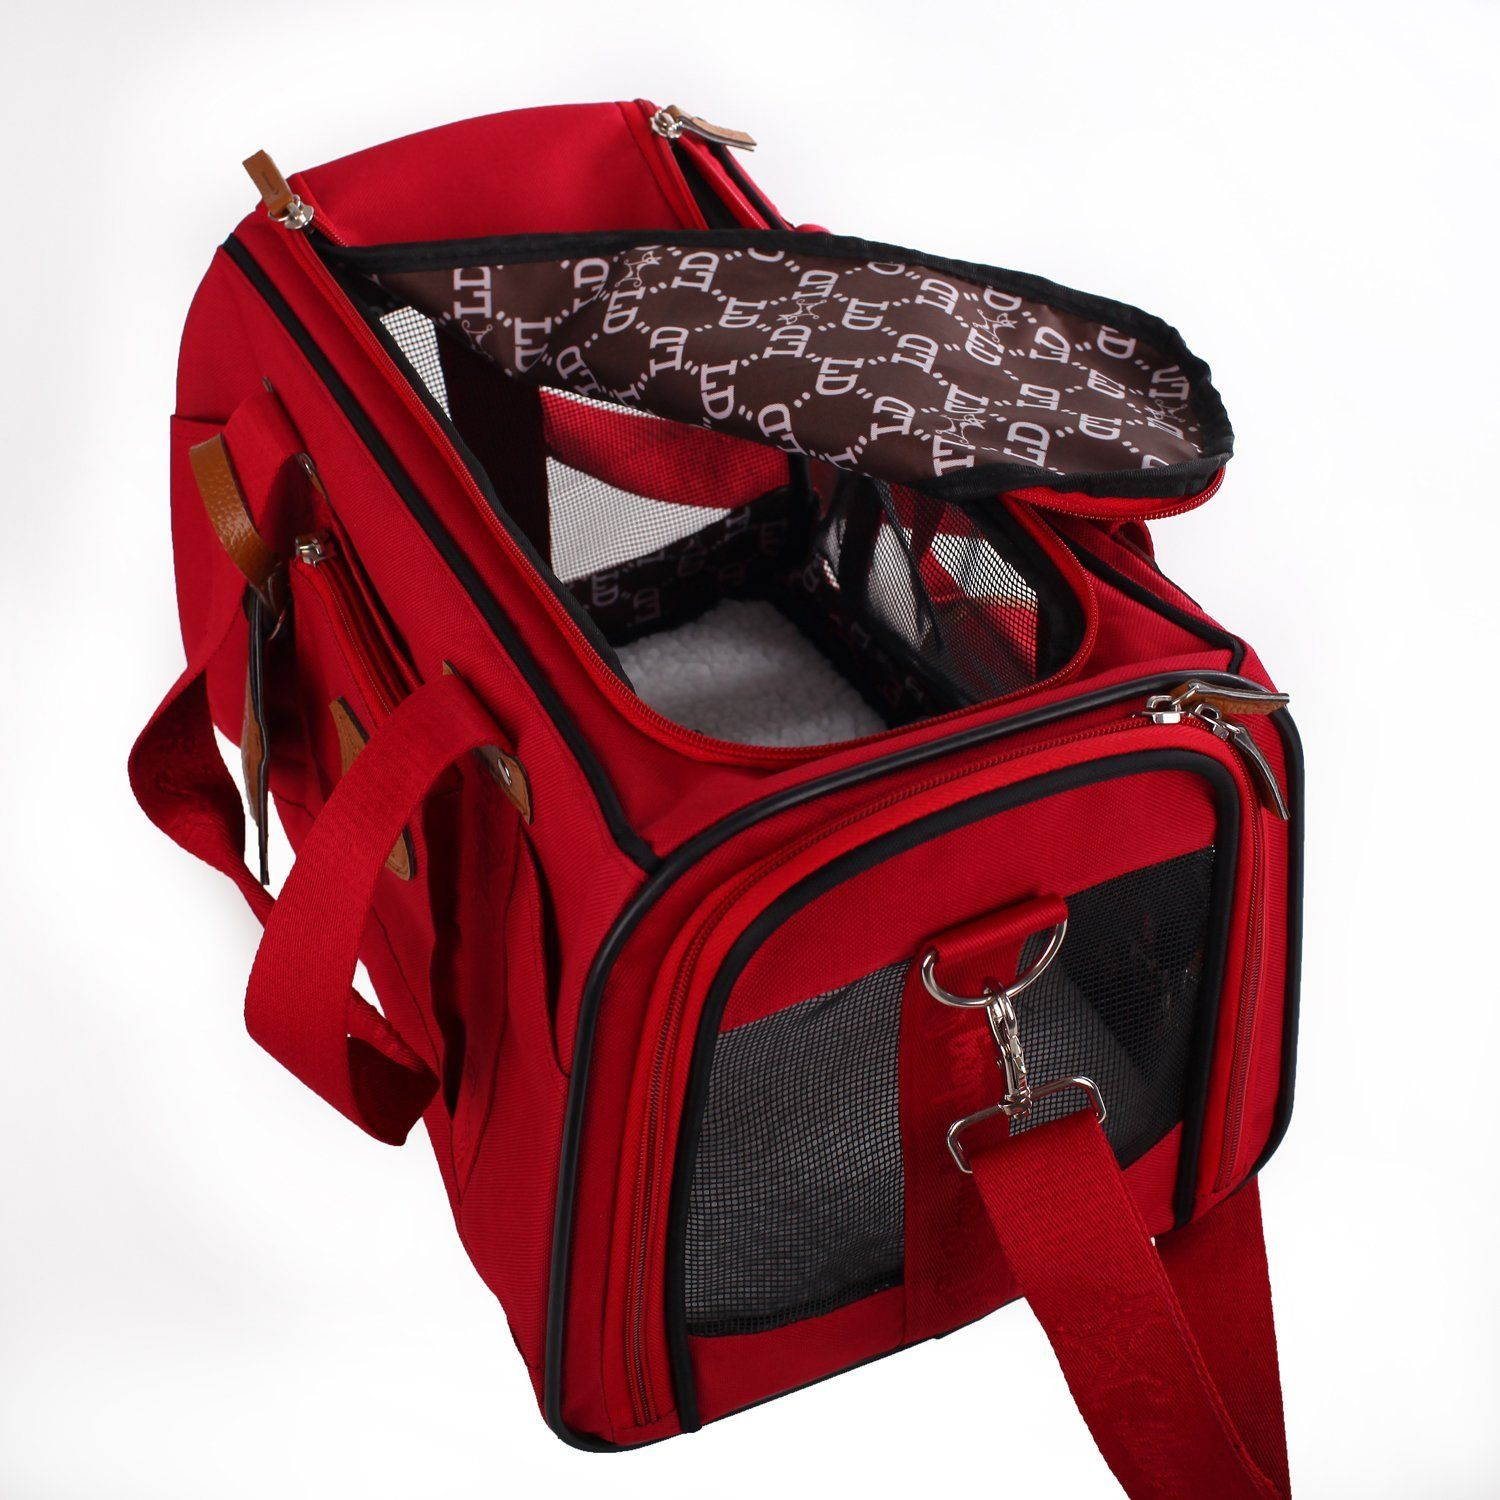 Superieur Soft Sided Travel Pet Carrier For Dog Or Cat. Airline Approved For In Cabin  Under